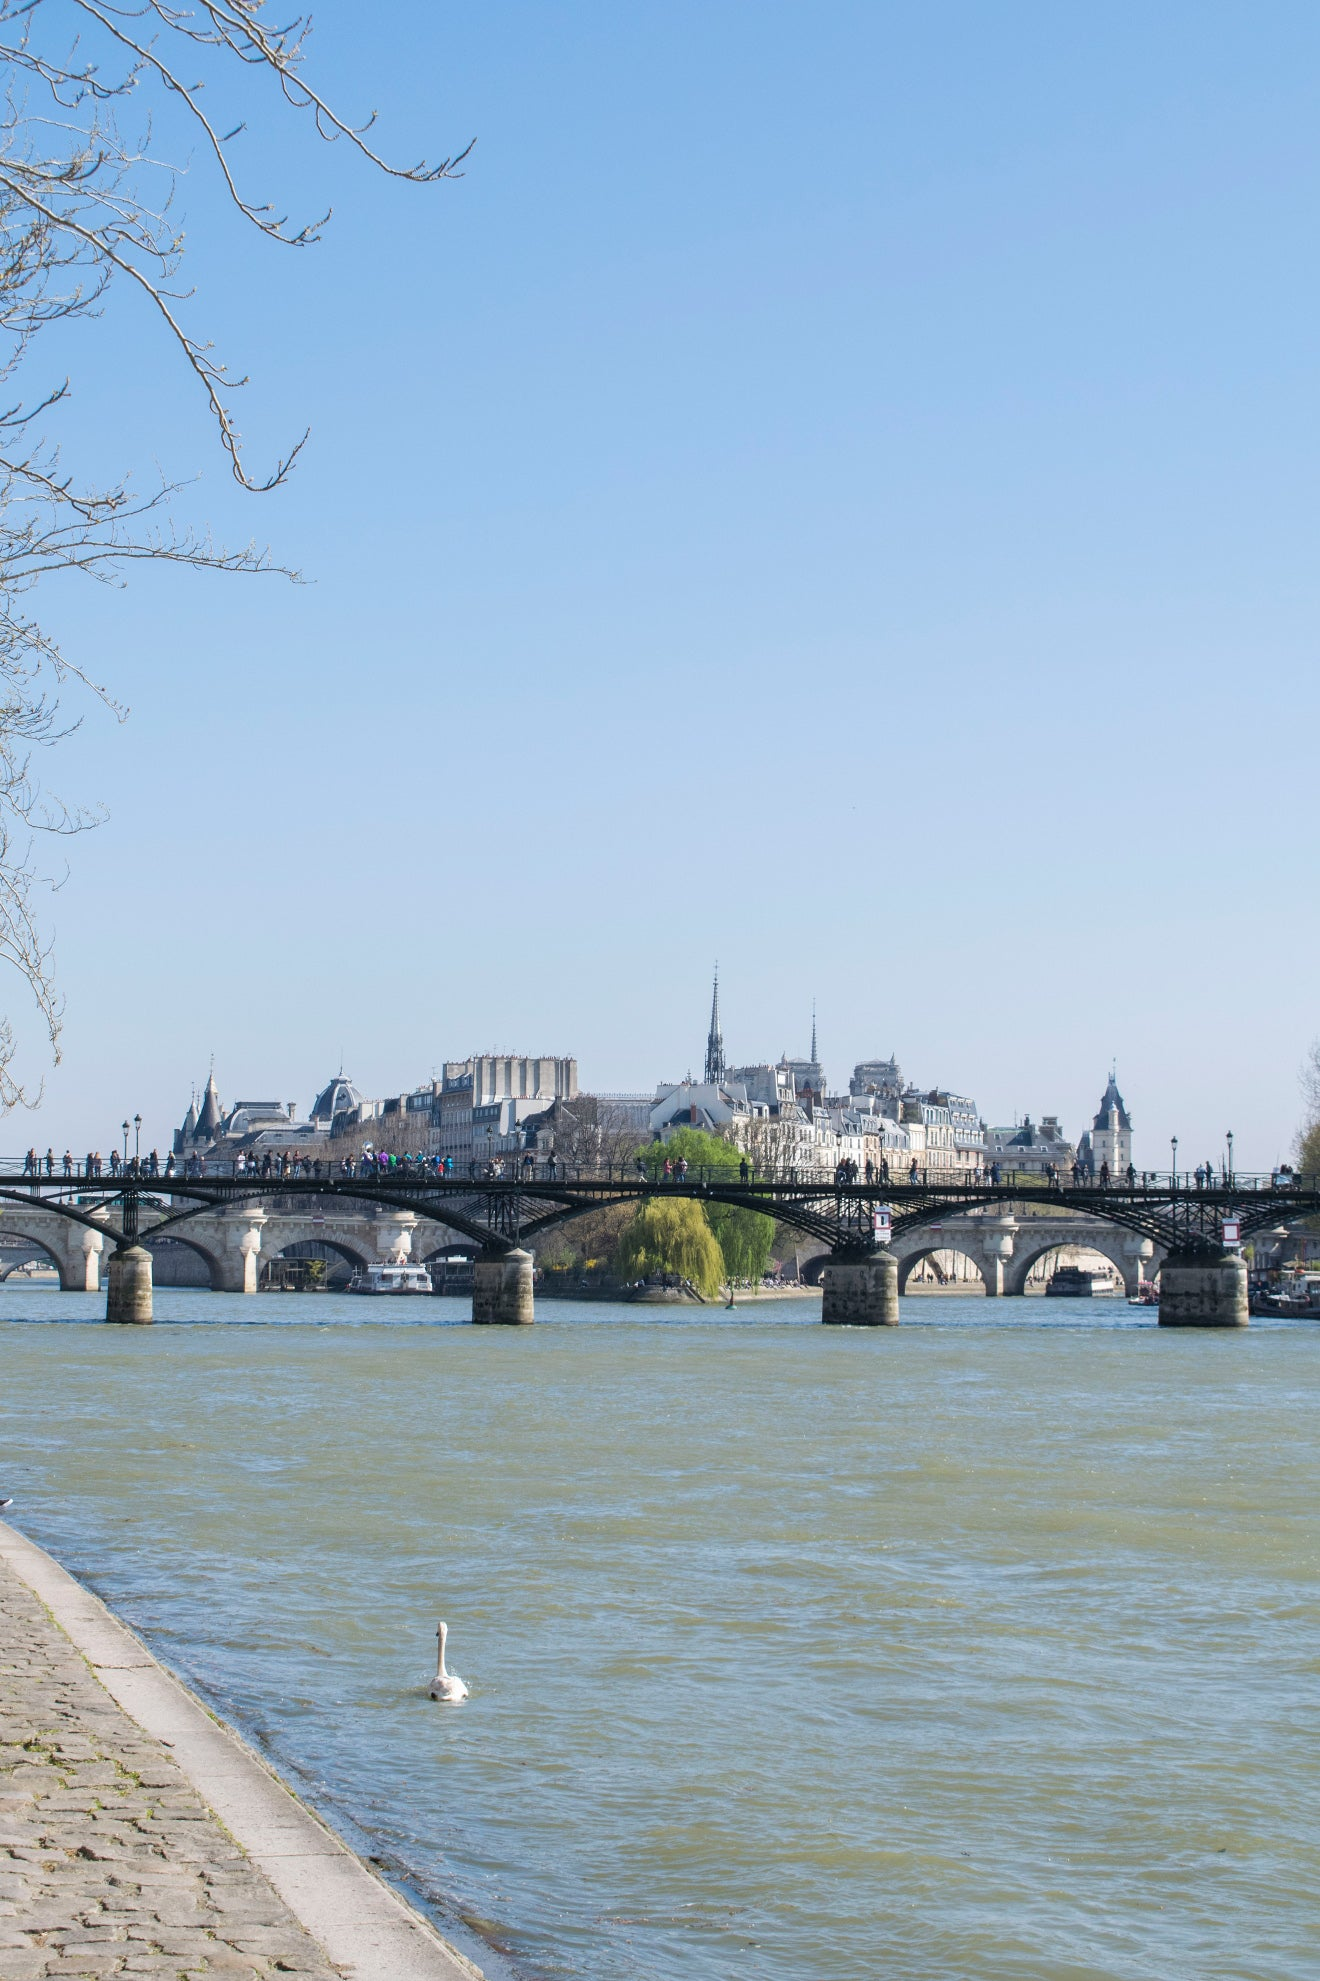 Views up the Seine across Pont Neuf and Place Dauphine in Paris